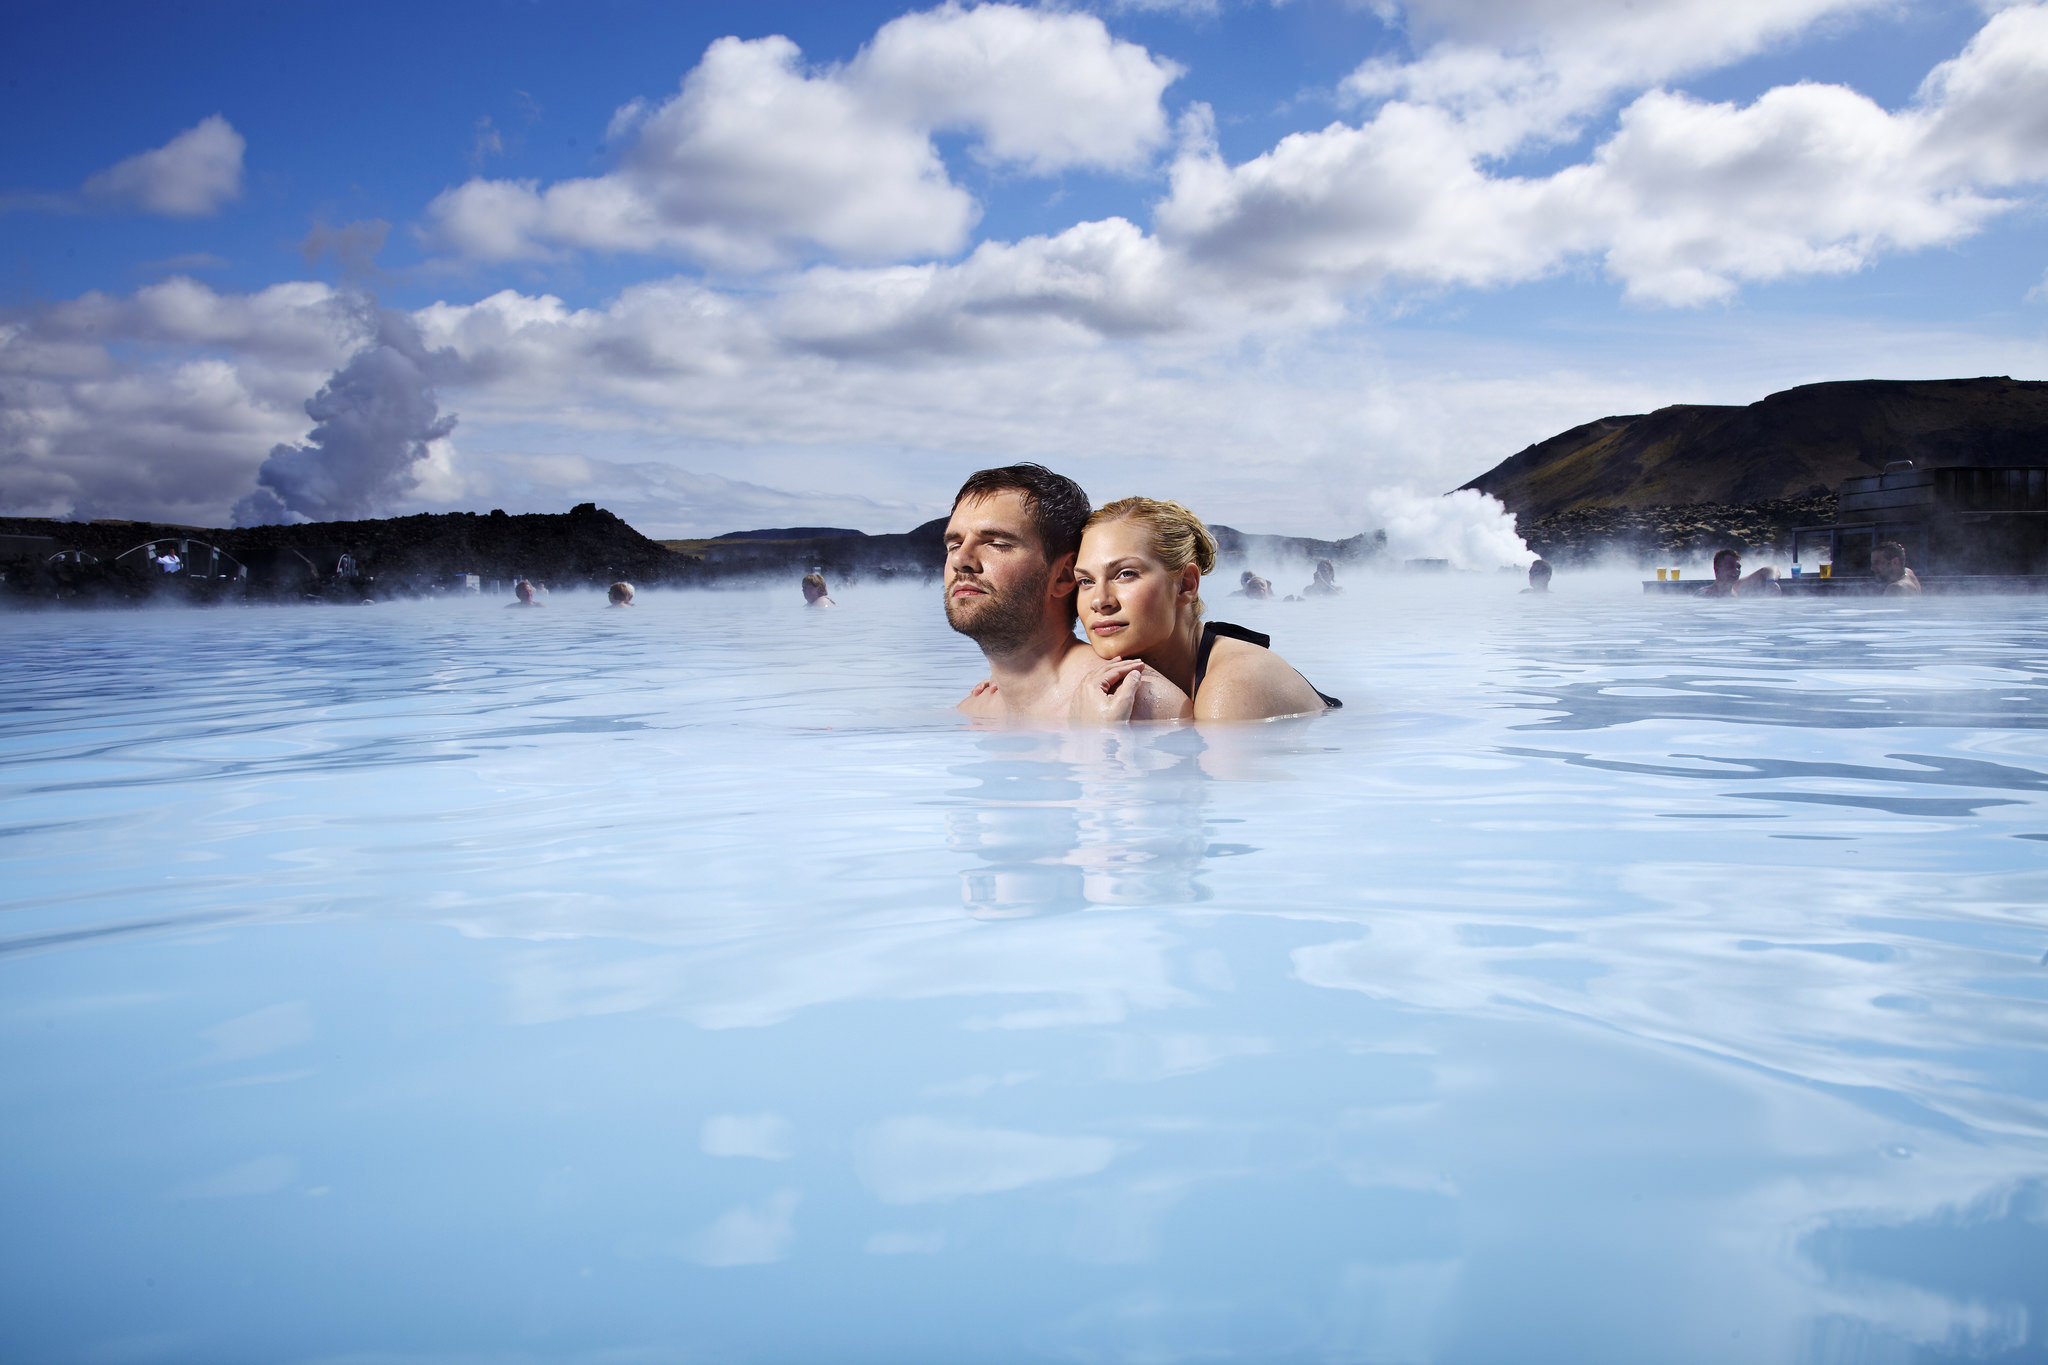 Iceland is one of the world's most ultimate destinations for a hot tub break .... photo by CC user greenlandtravel on Flickr